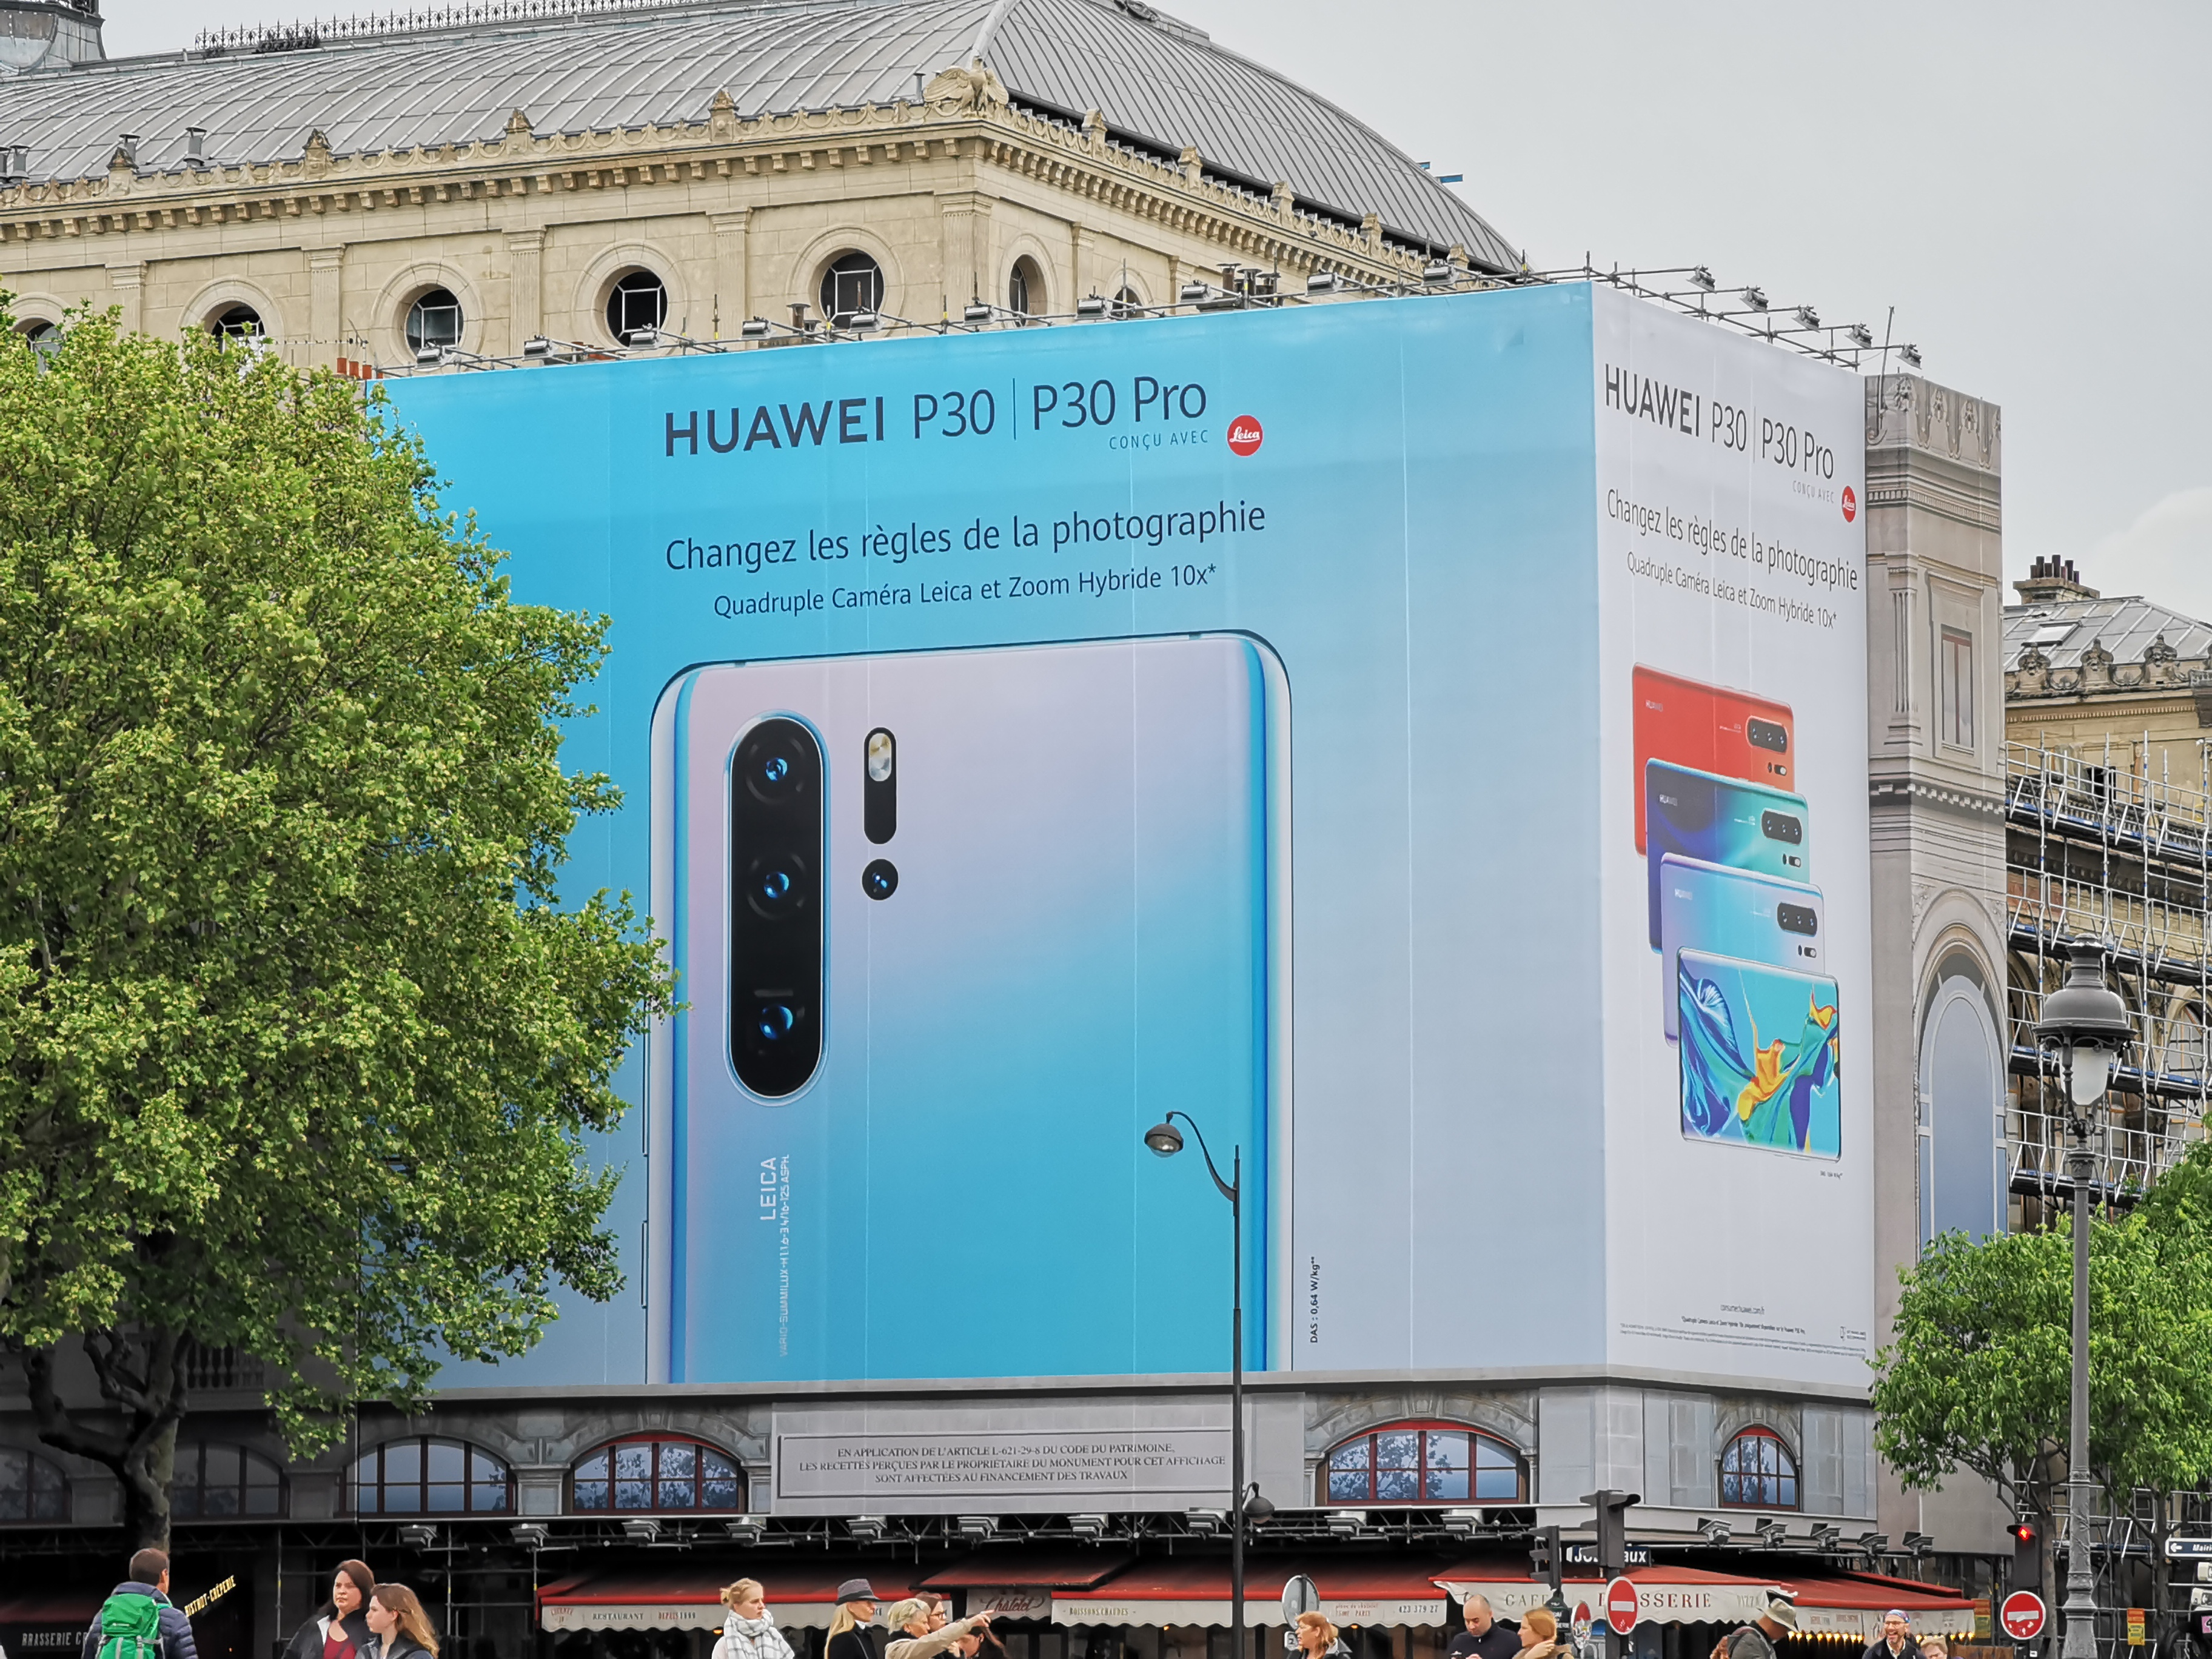 Huawei P30 Pro review: 3 camera upgrades that yield